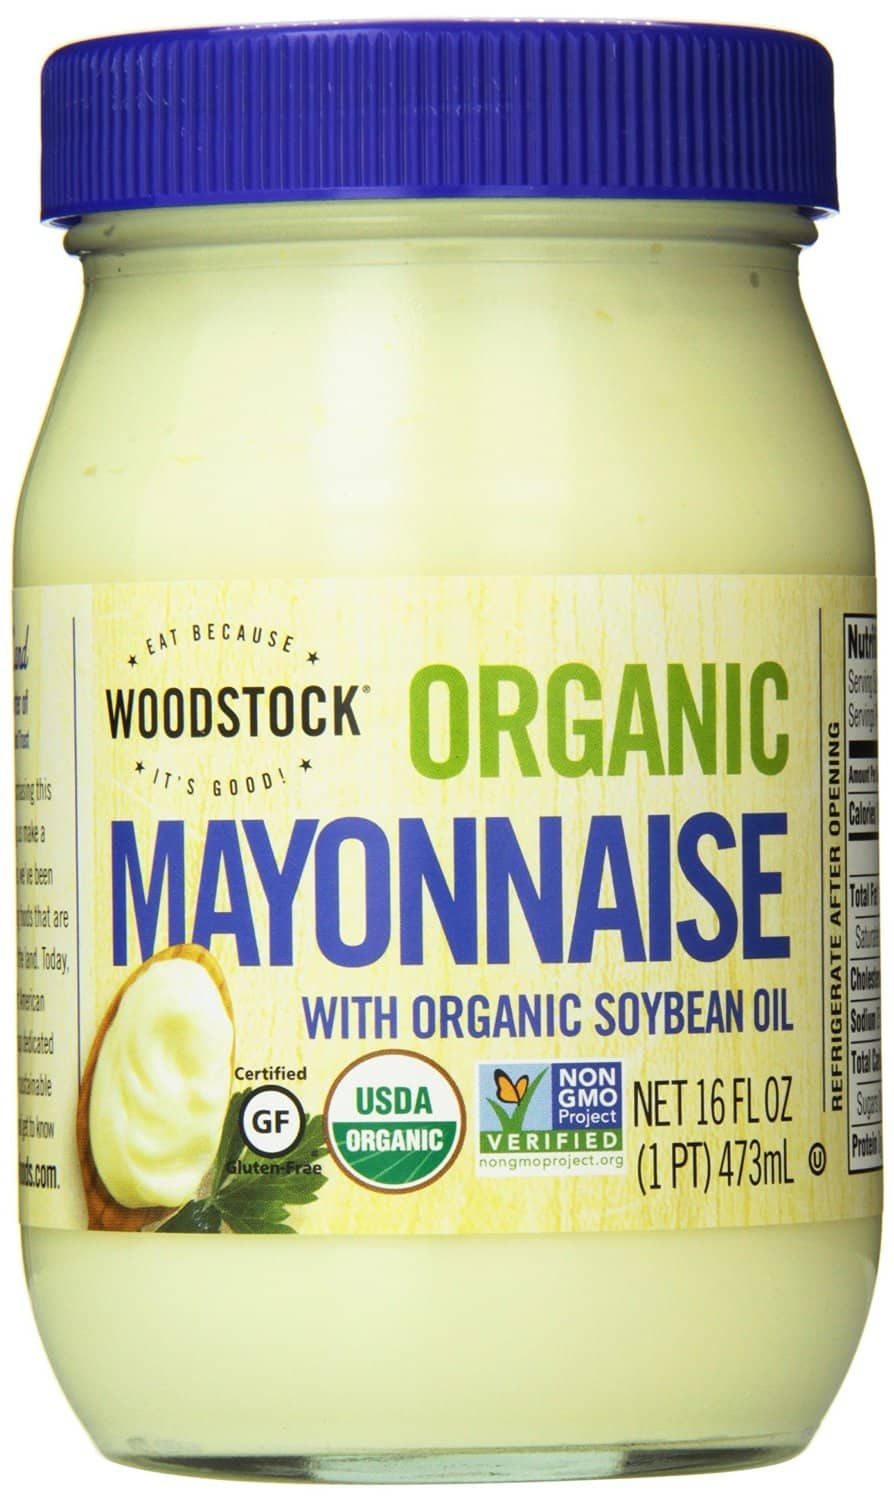 The Best Homemade Mayonnaise Ever, healthy mayo, creamy mayo for tuna salad, ham salad, chicken salad, yellow sauce, homemade blender sandwich spread, chemical free, additive free, Woodstock Farms Organic Mayo